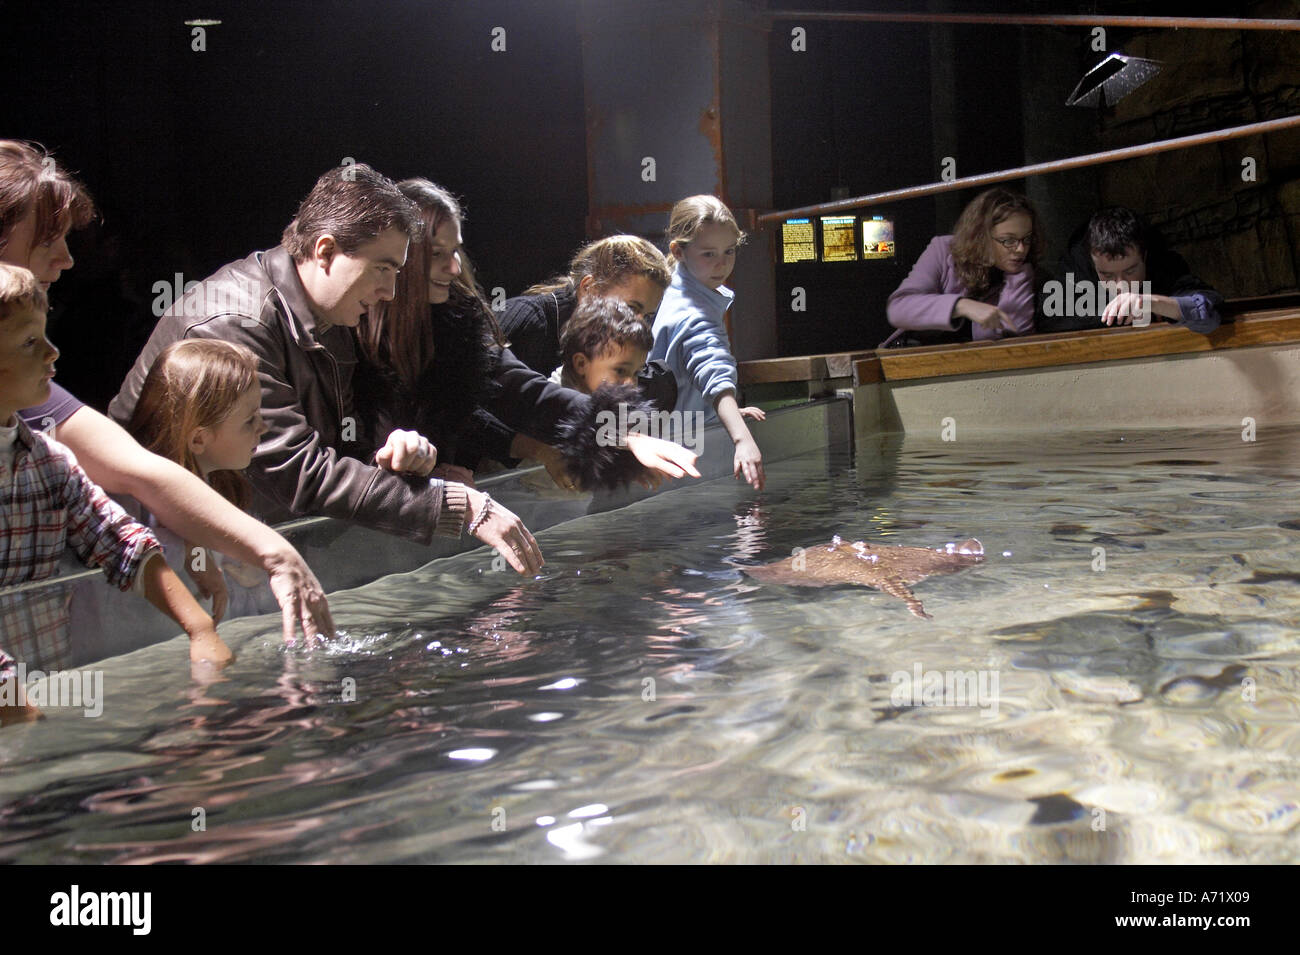 Buy fish for aquarium london - People And Families Watching Ray Fish Swimming And Trying To Tickle Them In The London Aquarium London Se1